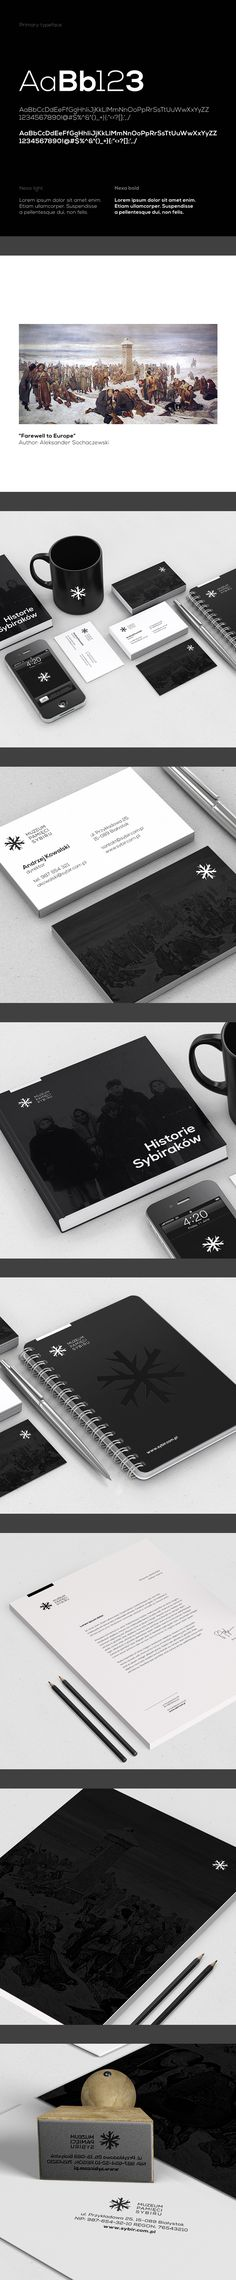 identity / Memorial Museum of Siberia | #stationary #corporate #design #corporatedesign #identity #branding #marketing < repinned by www.BlickeDeeler.de | Take a look at www.LogoGestaltung-Hamburg.de